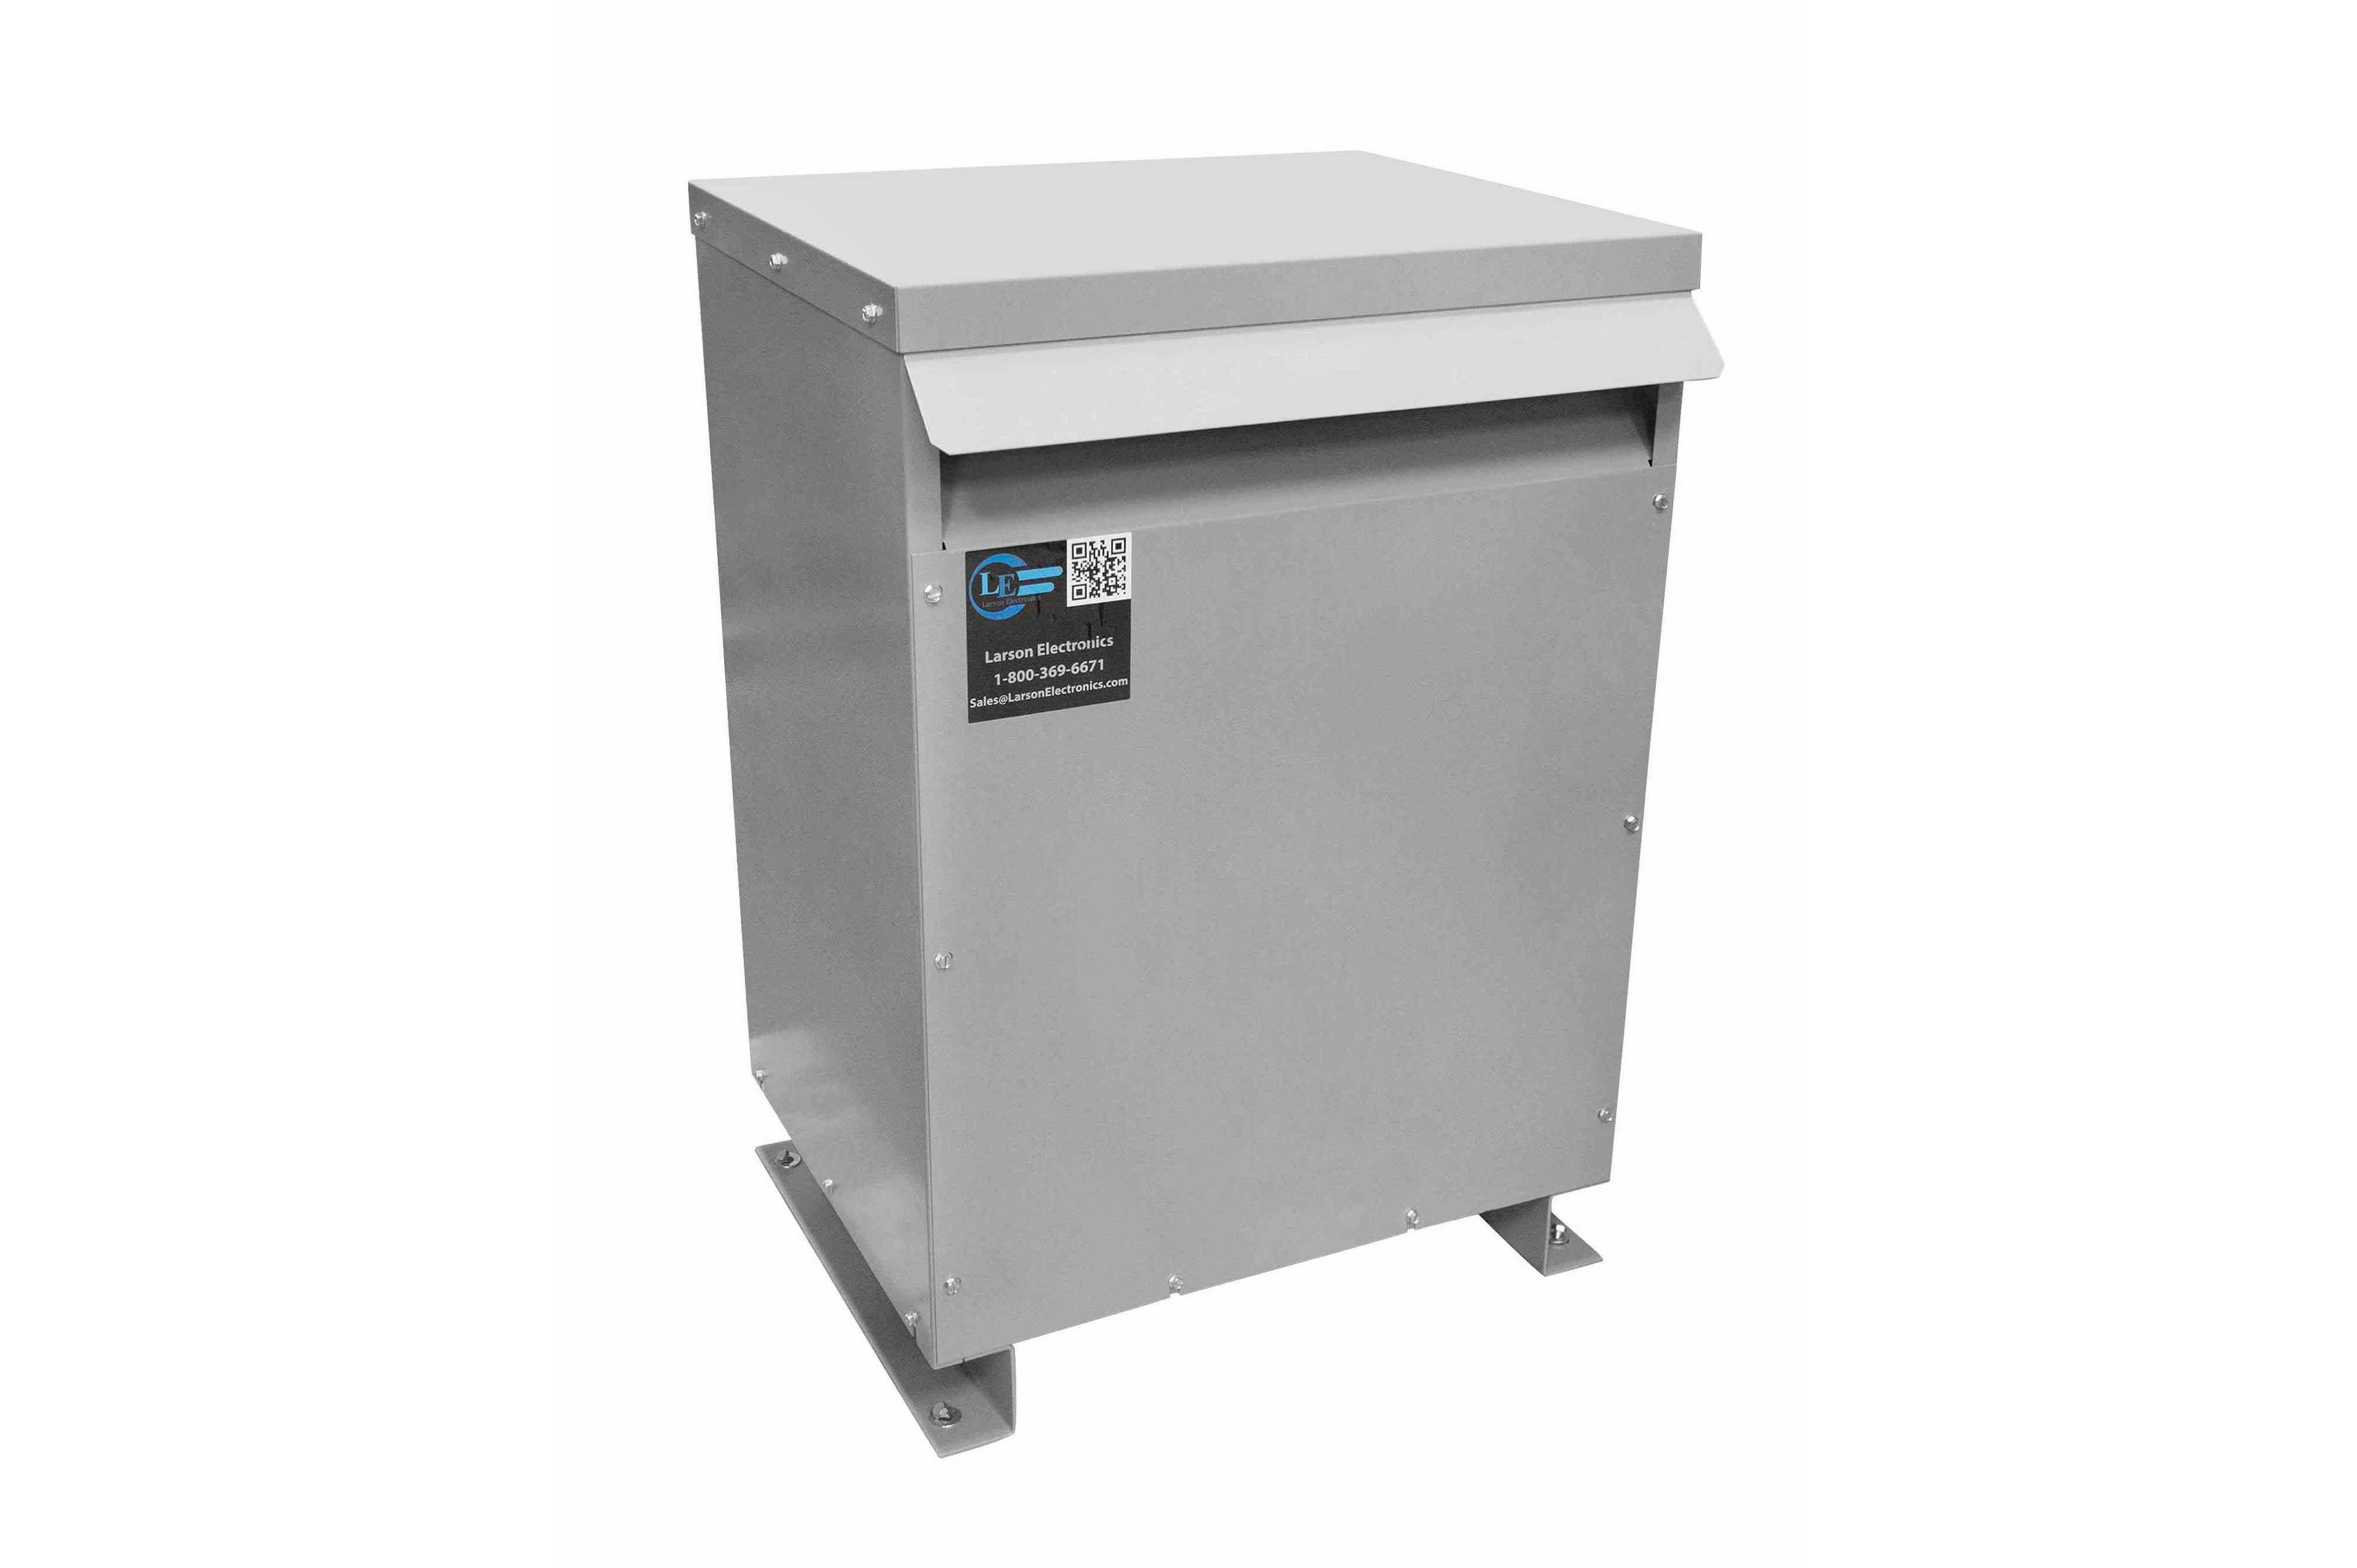 27 kVA 3PH Isolation Transformer, 240V Wye Primary, 480V Delta Secondary, N3R, Ventilated, 60 Hz